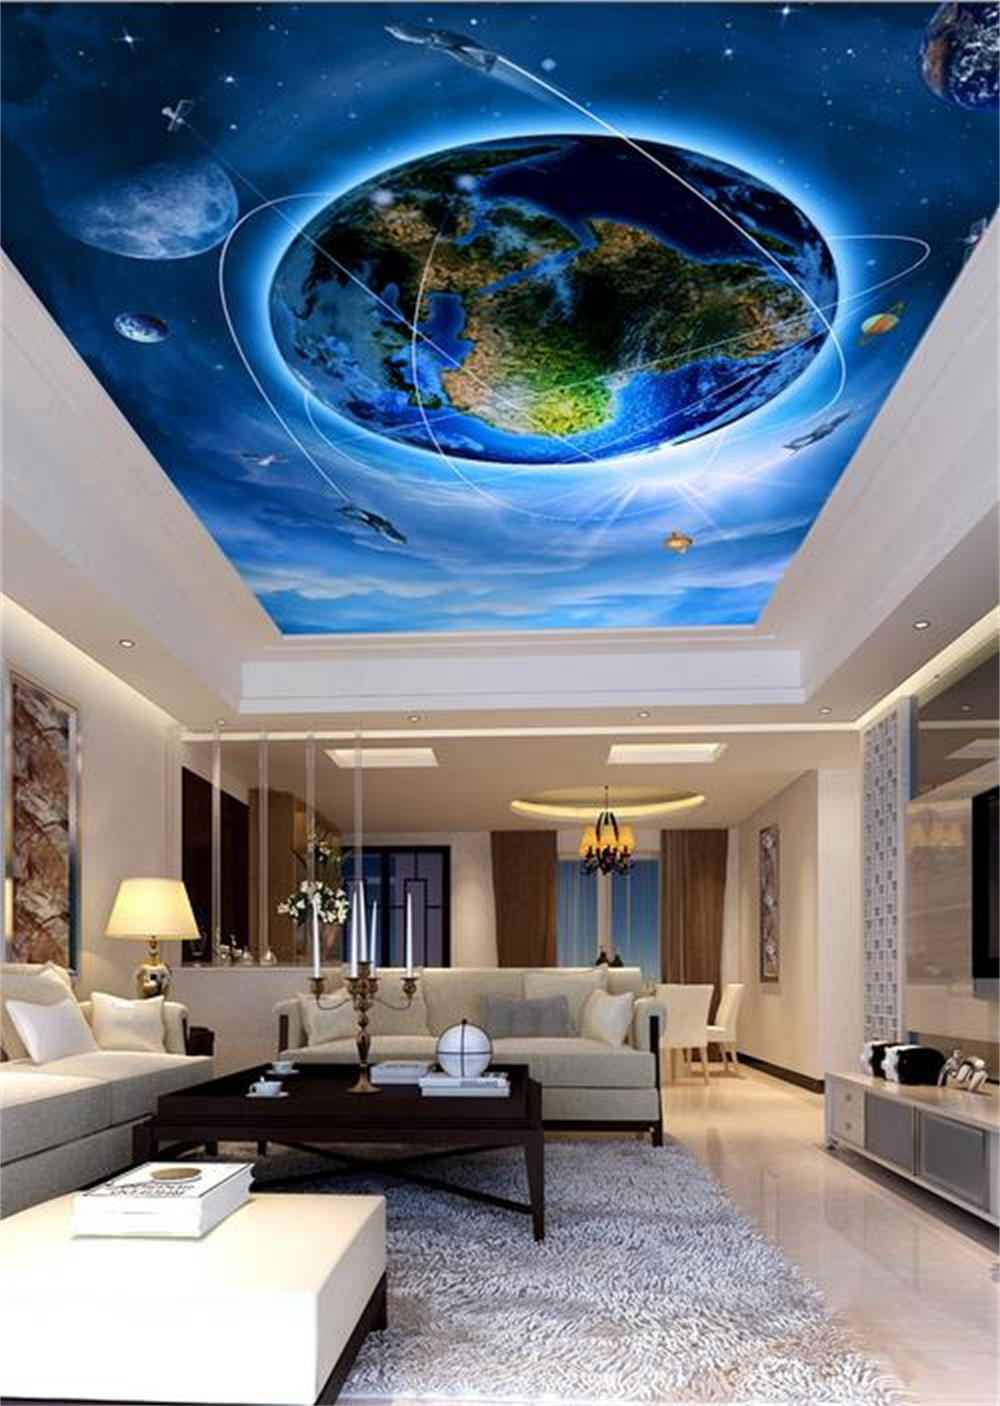 3D wallpaper ceiling/custom photo wall paper/Only beautiful earth design/Bedroom/KTV/Hotel/bar/living room/Children room d d imperio d imperio flea market treasure paper only